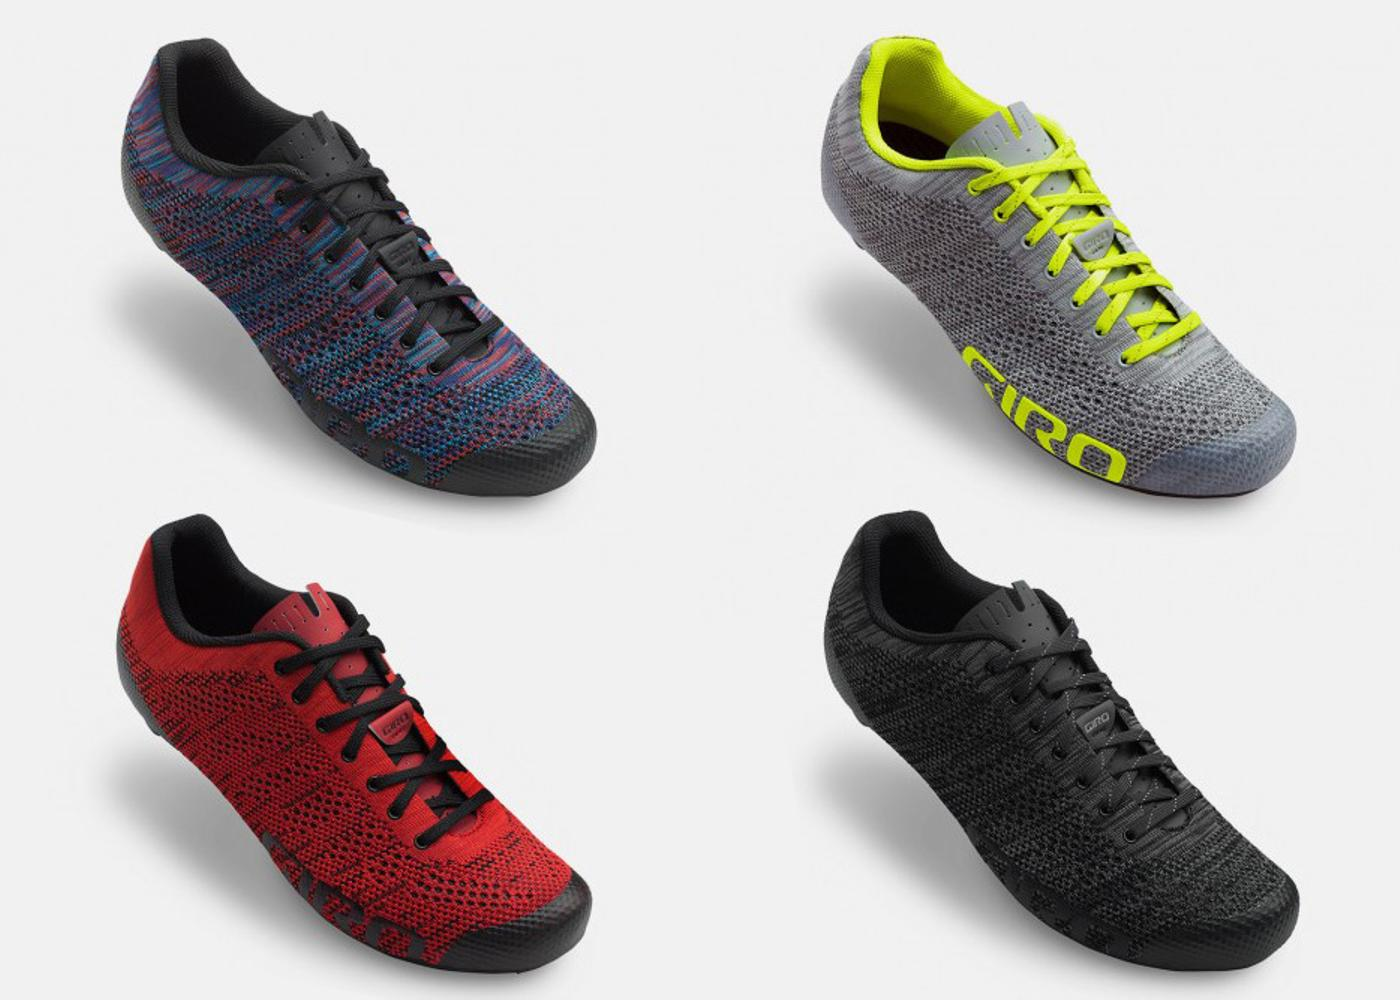 Giro's New Empire E70 Knit Road Shoes